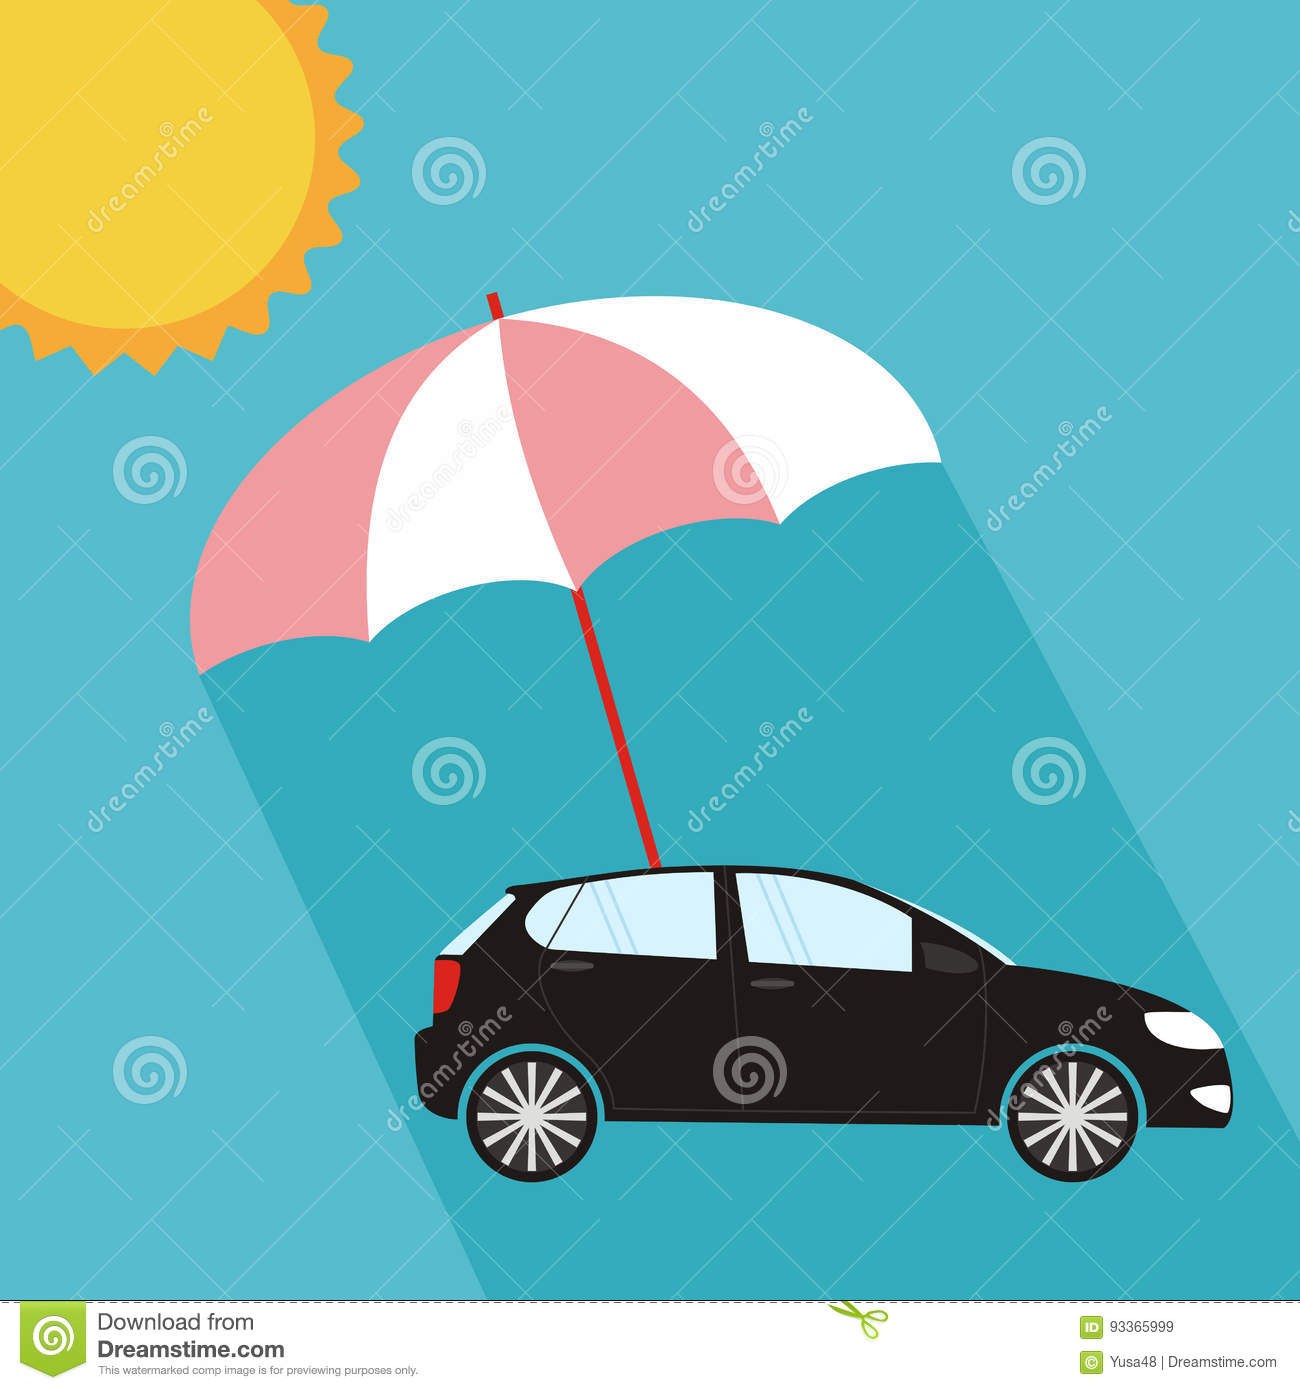 Umbrella Protecting Car Against Sun Flat Style Safety Insurance